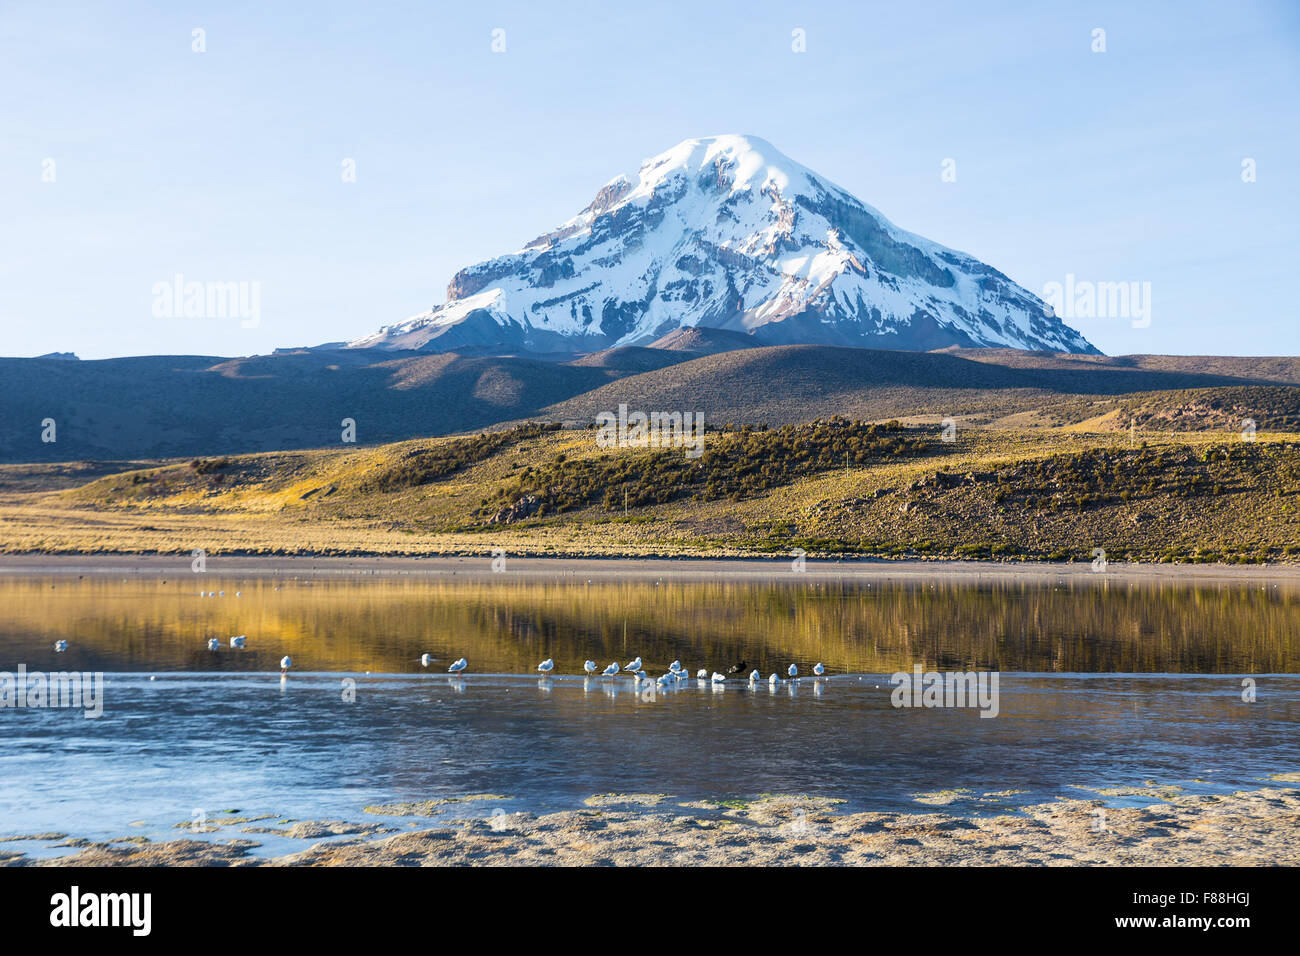 Sajama volcano and lake Huañacota, in the Natural Park of Sajama. Bolivia - Stock Image